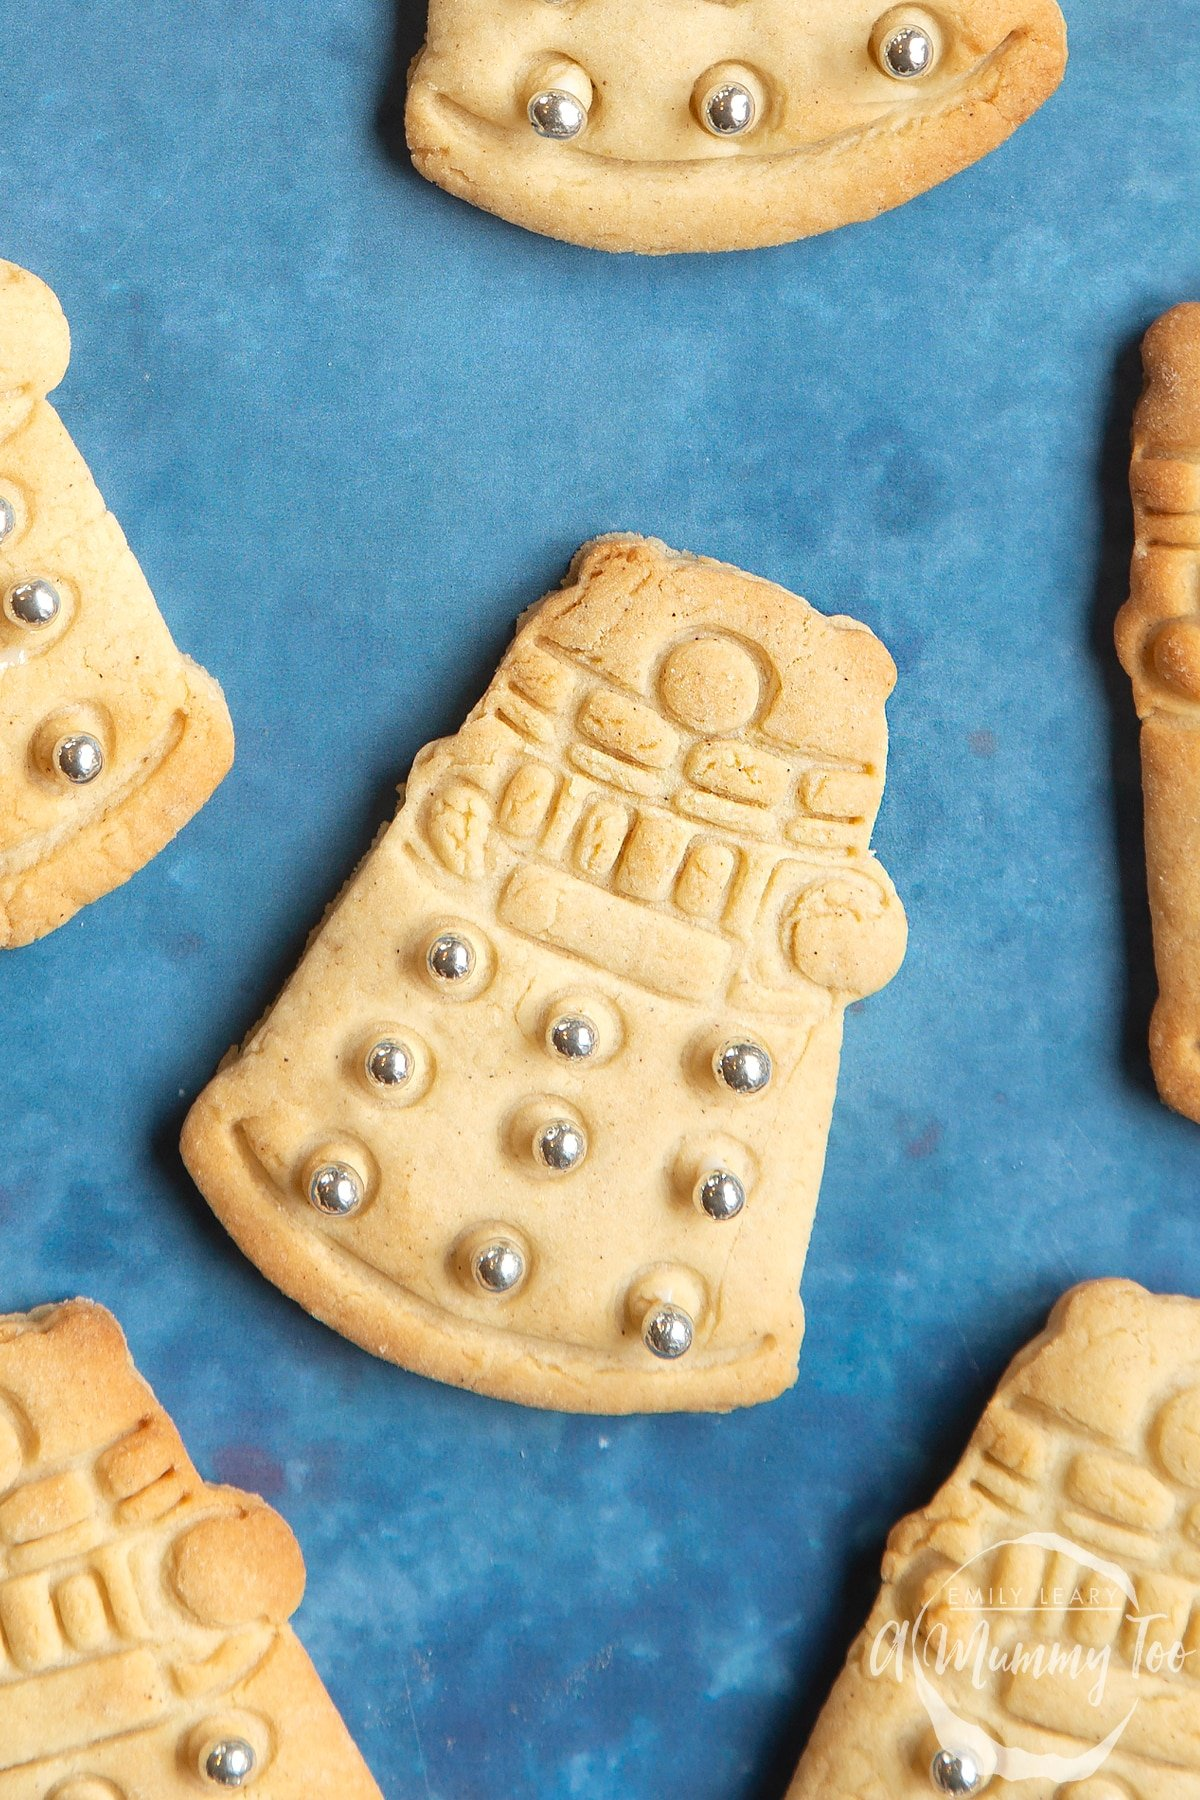 Close up of a Dalek cookies on a blue background. The cookie is decorated with edible silver candy balls.